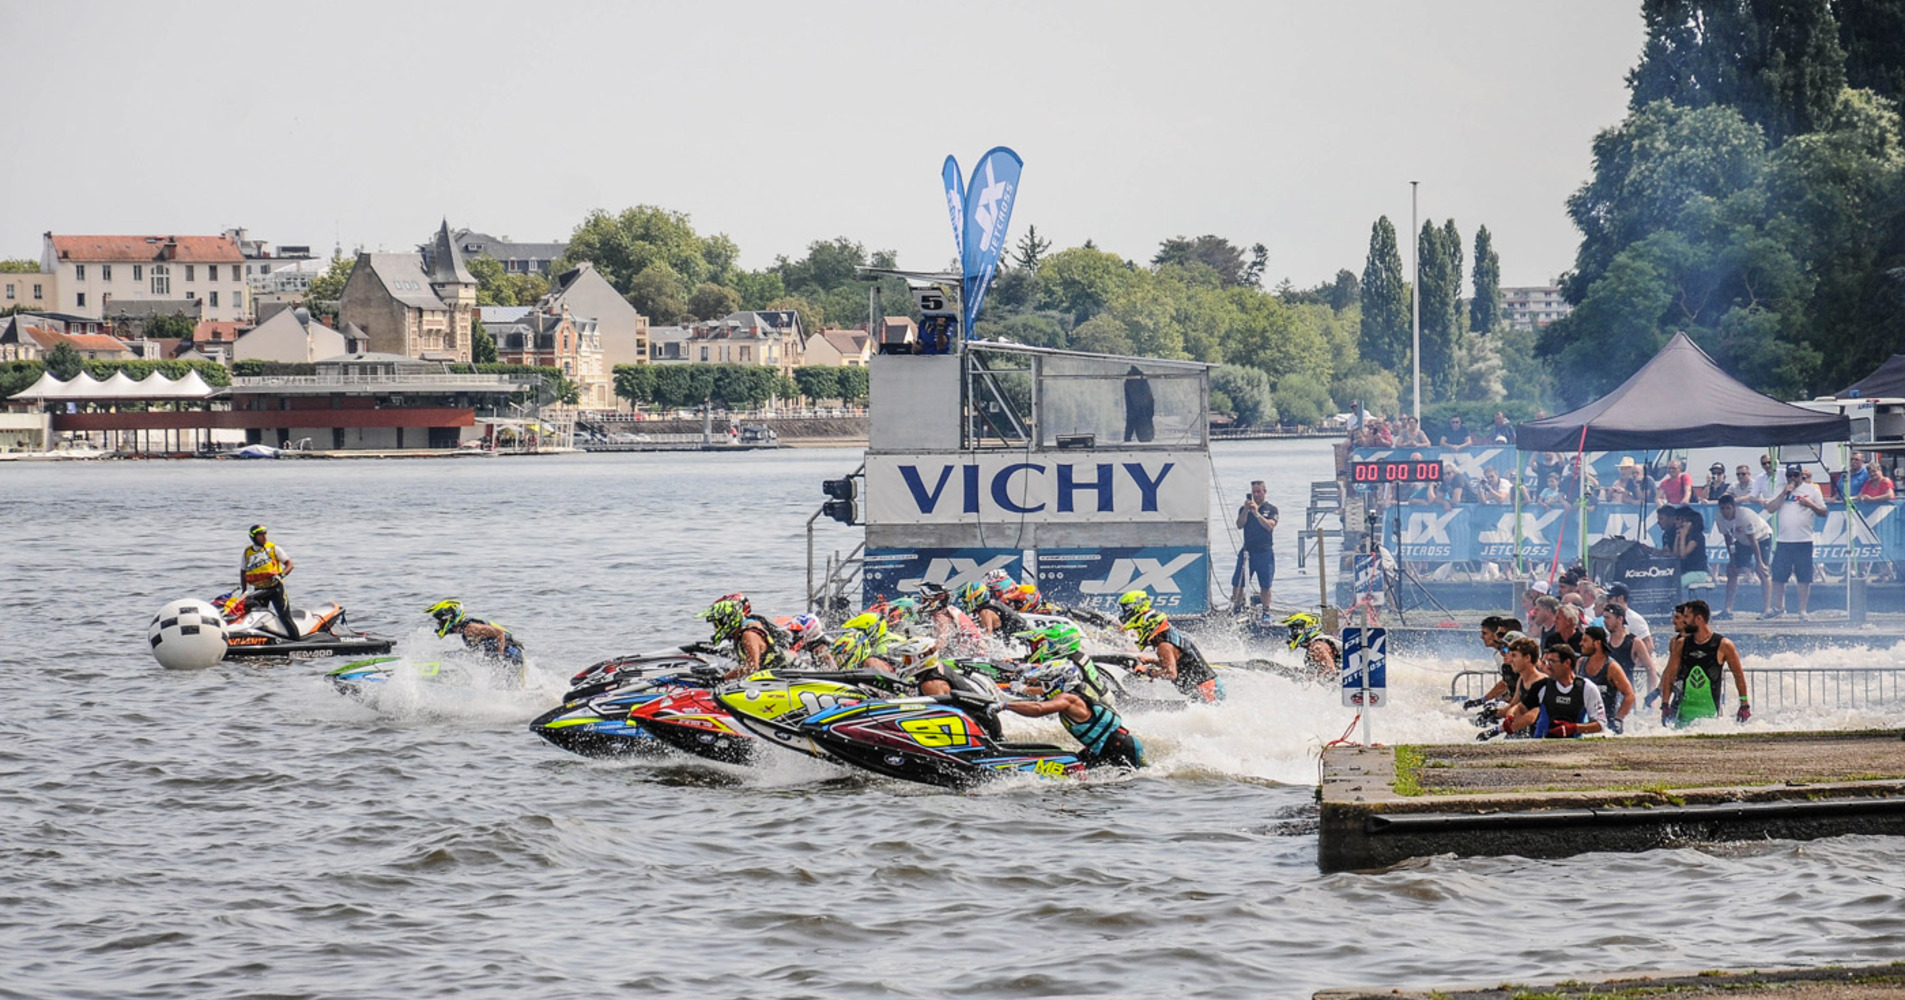 Vichy hosts the P1 Jetcross the 21-22 July